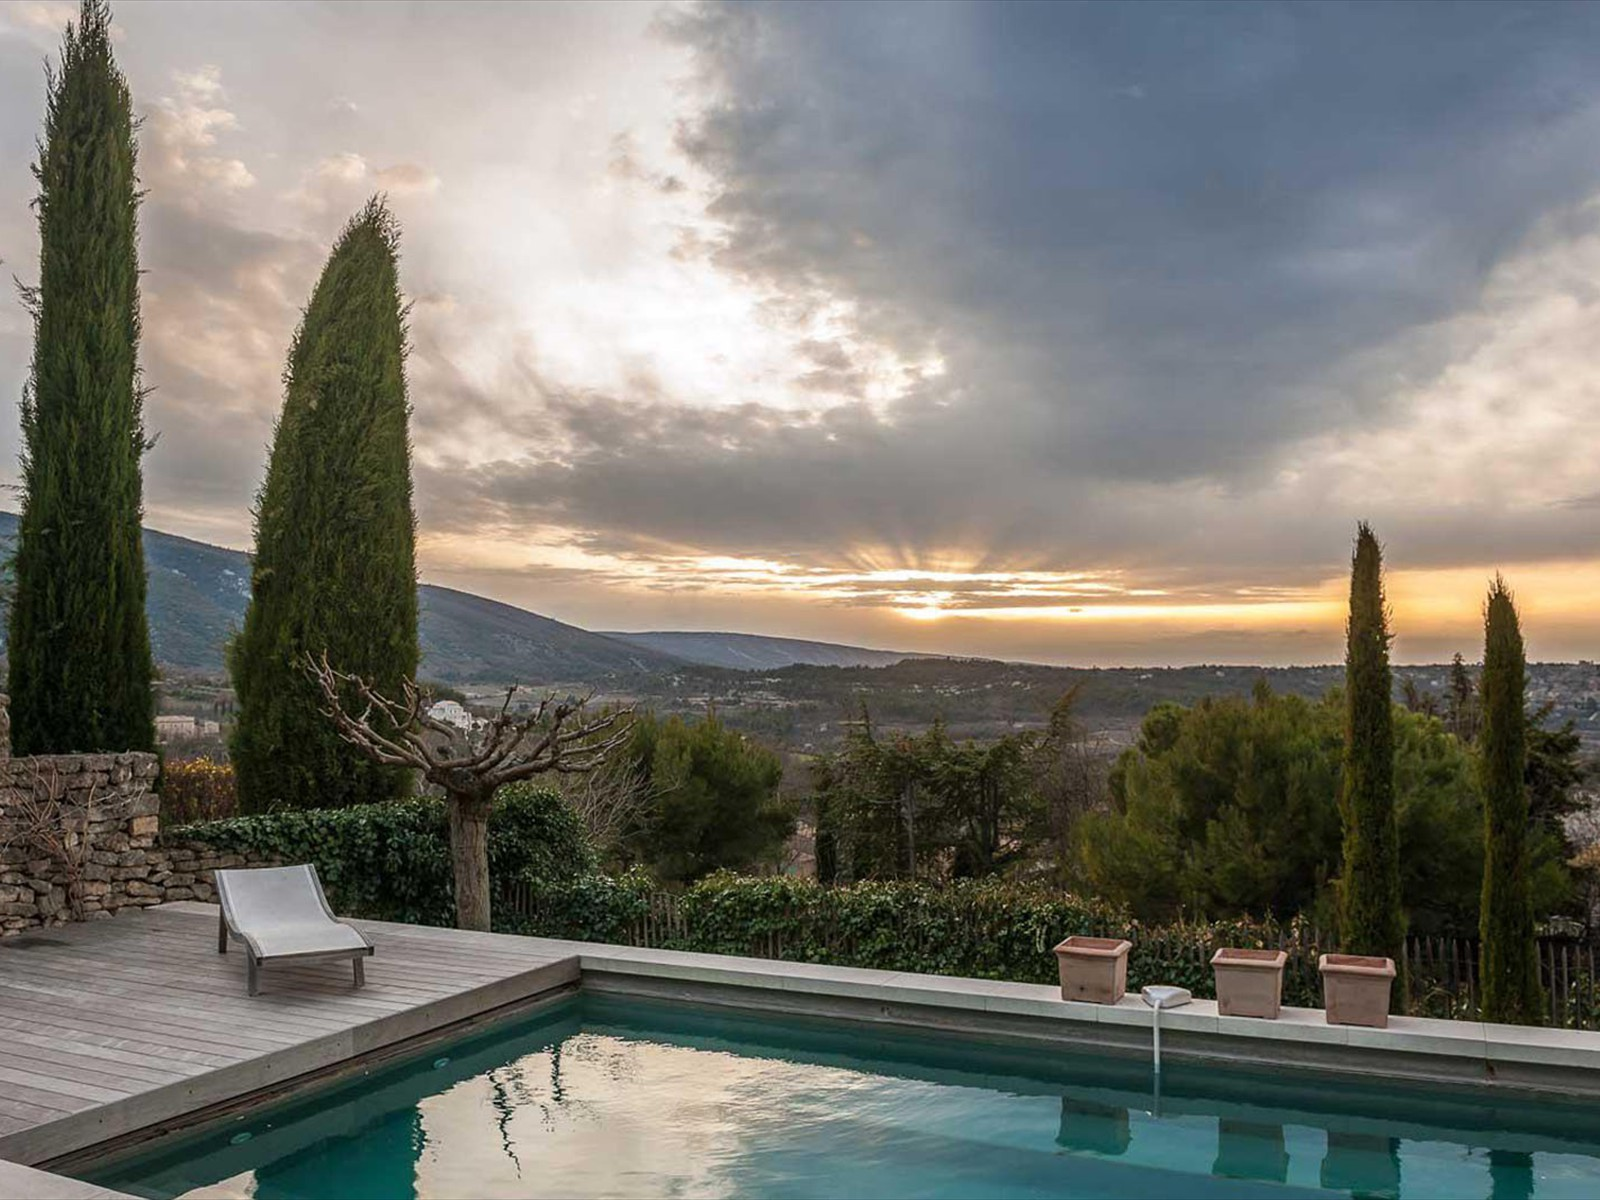 exclusive_rentals_provence_vacation_luxury_homes_holiday_rentals_mont_ventoux_luberon_22